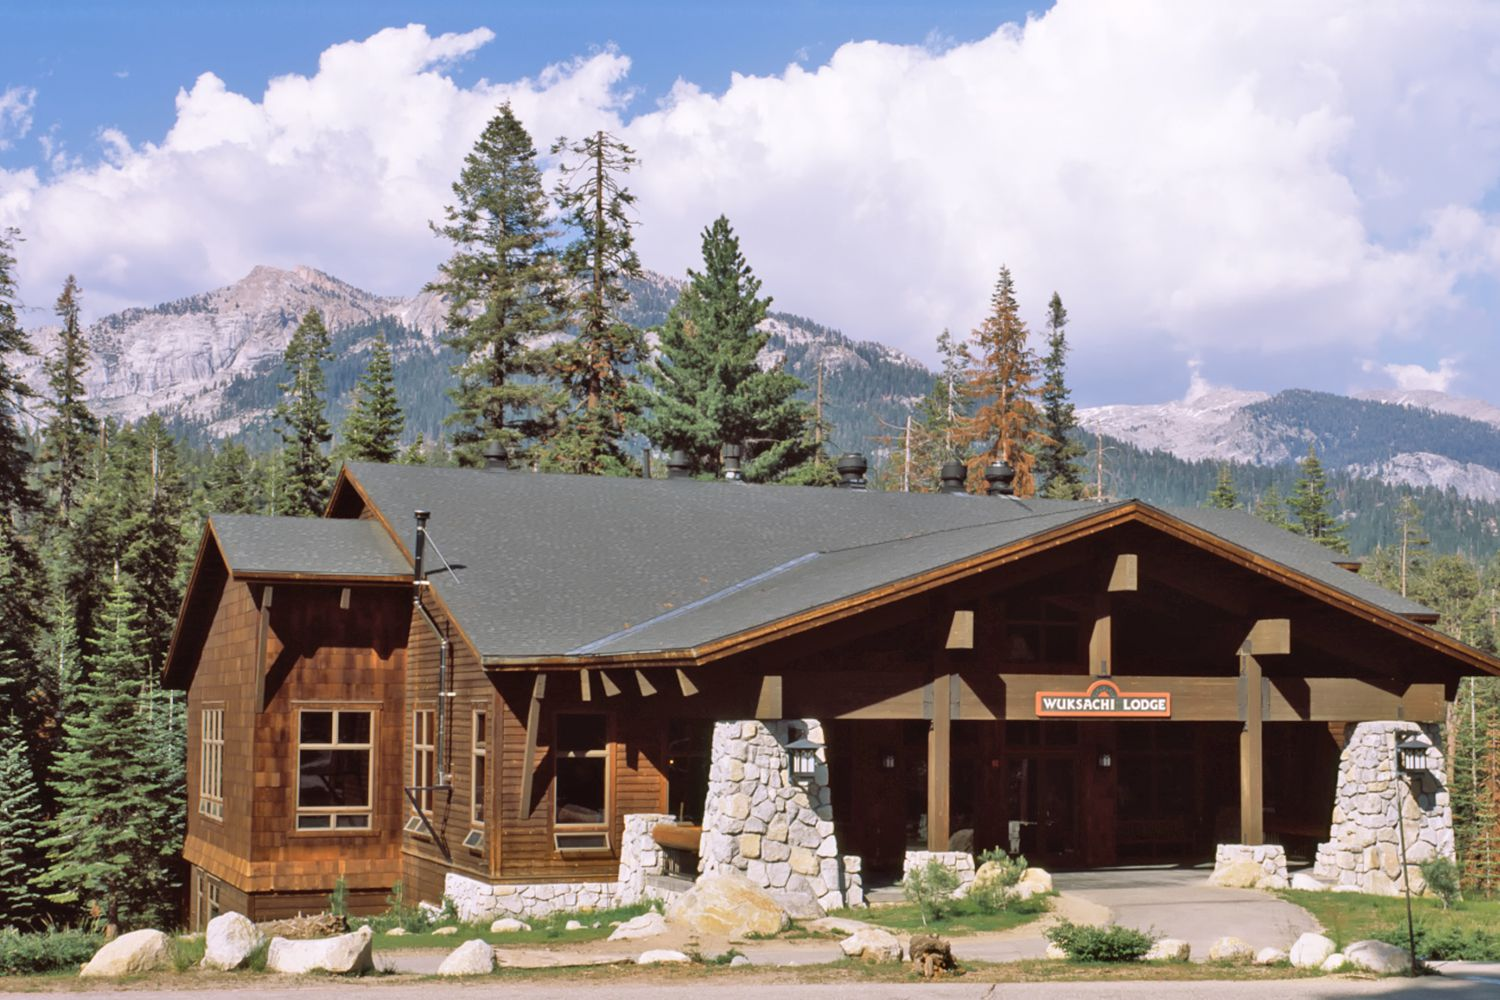 sequoia camping the meadows hotel erth private lrgest cabins cny prk national near sequoi fire cabin park in big forest nd ntil t